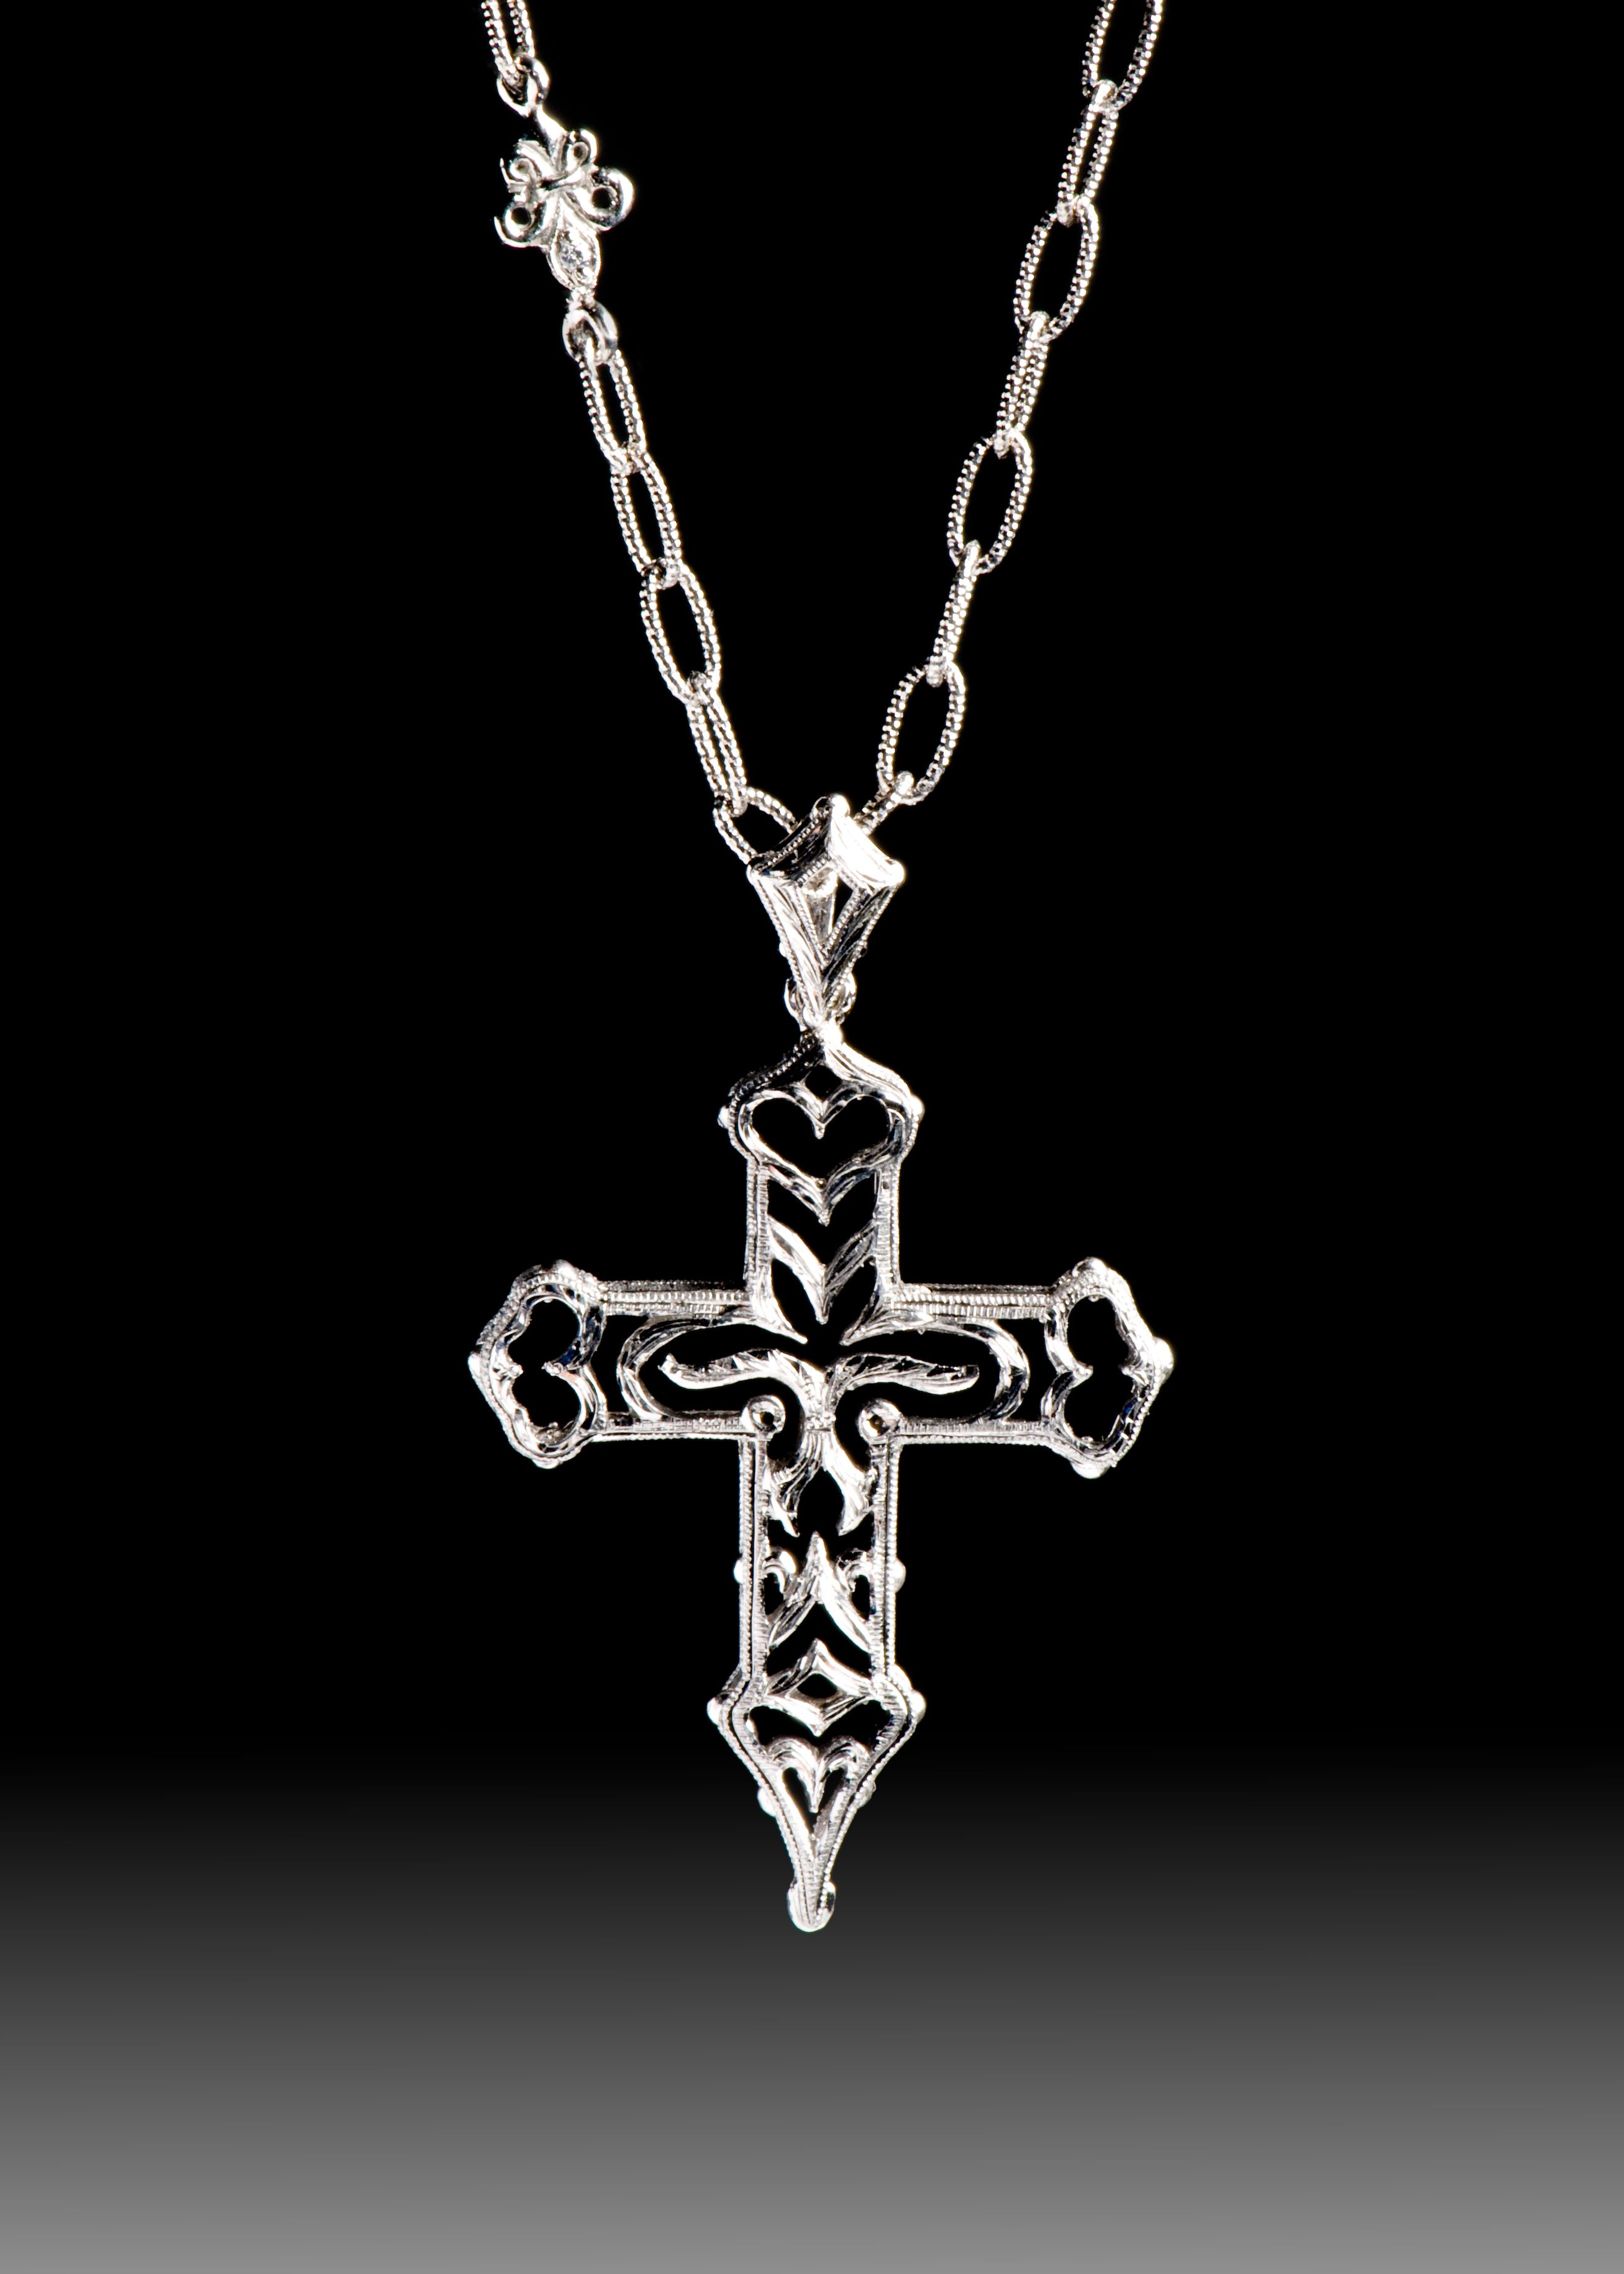 JPratt Designs: Custom designed and custom created ornate cross necklace with a custom chain